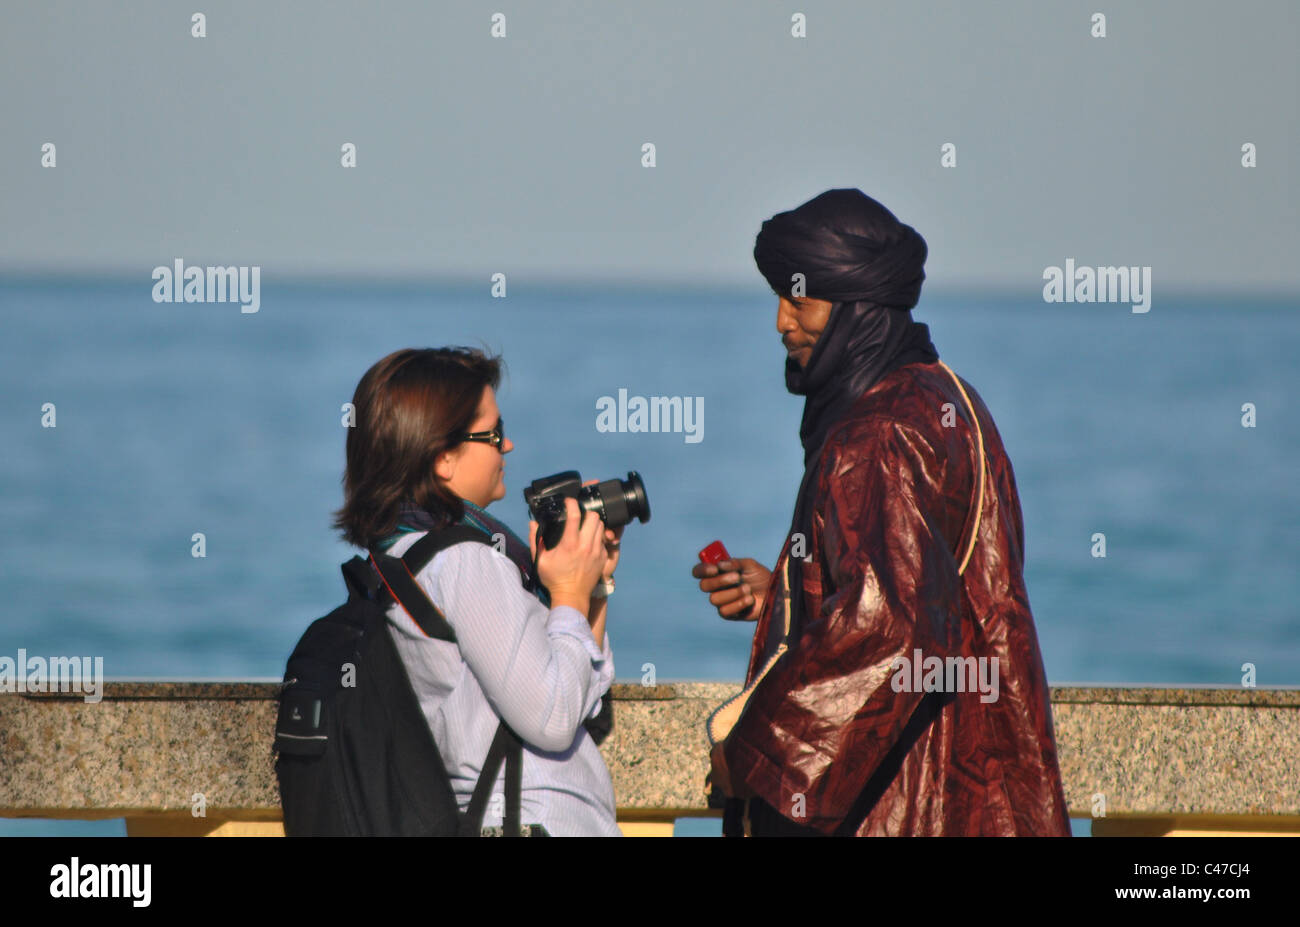 Femme prendre une photo d'un homme tunisien à Sousse, Tunisie Photo Stock